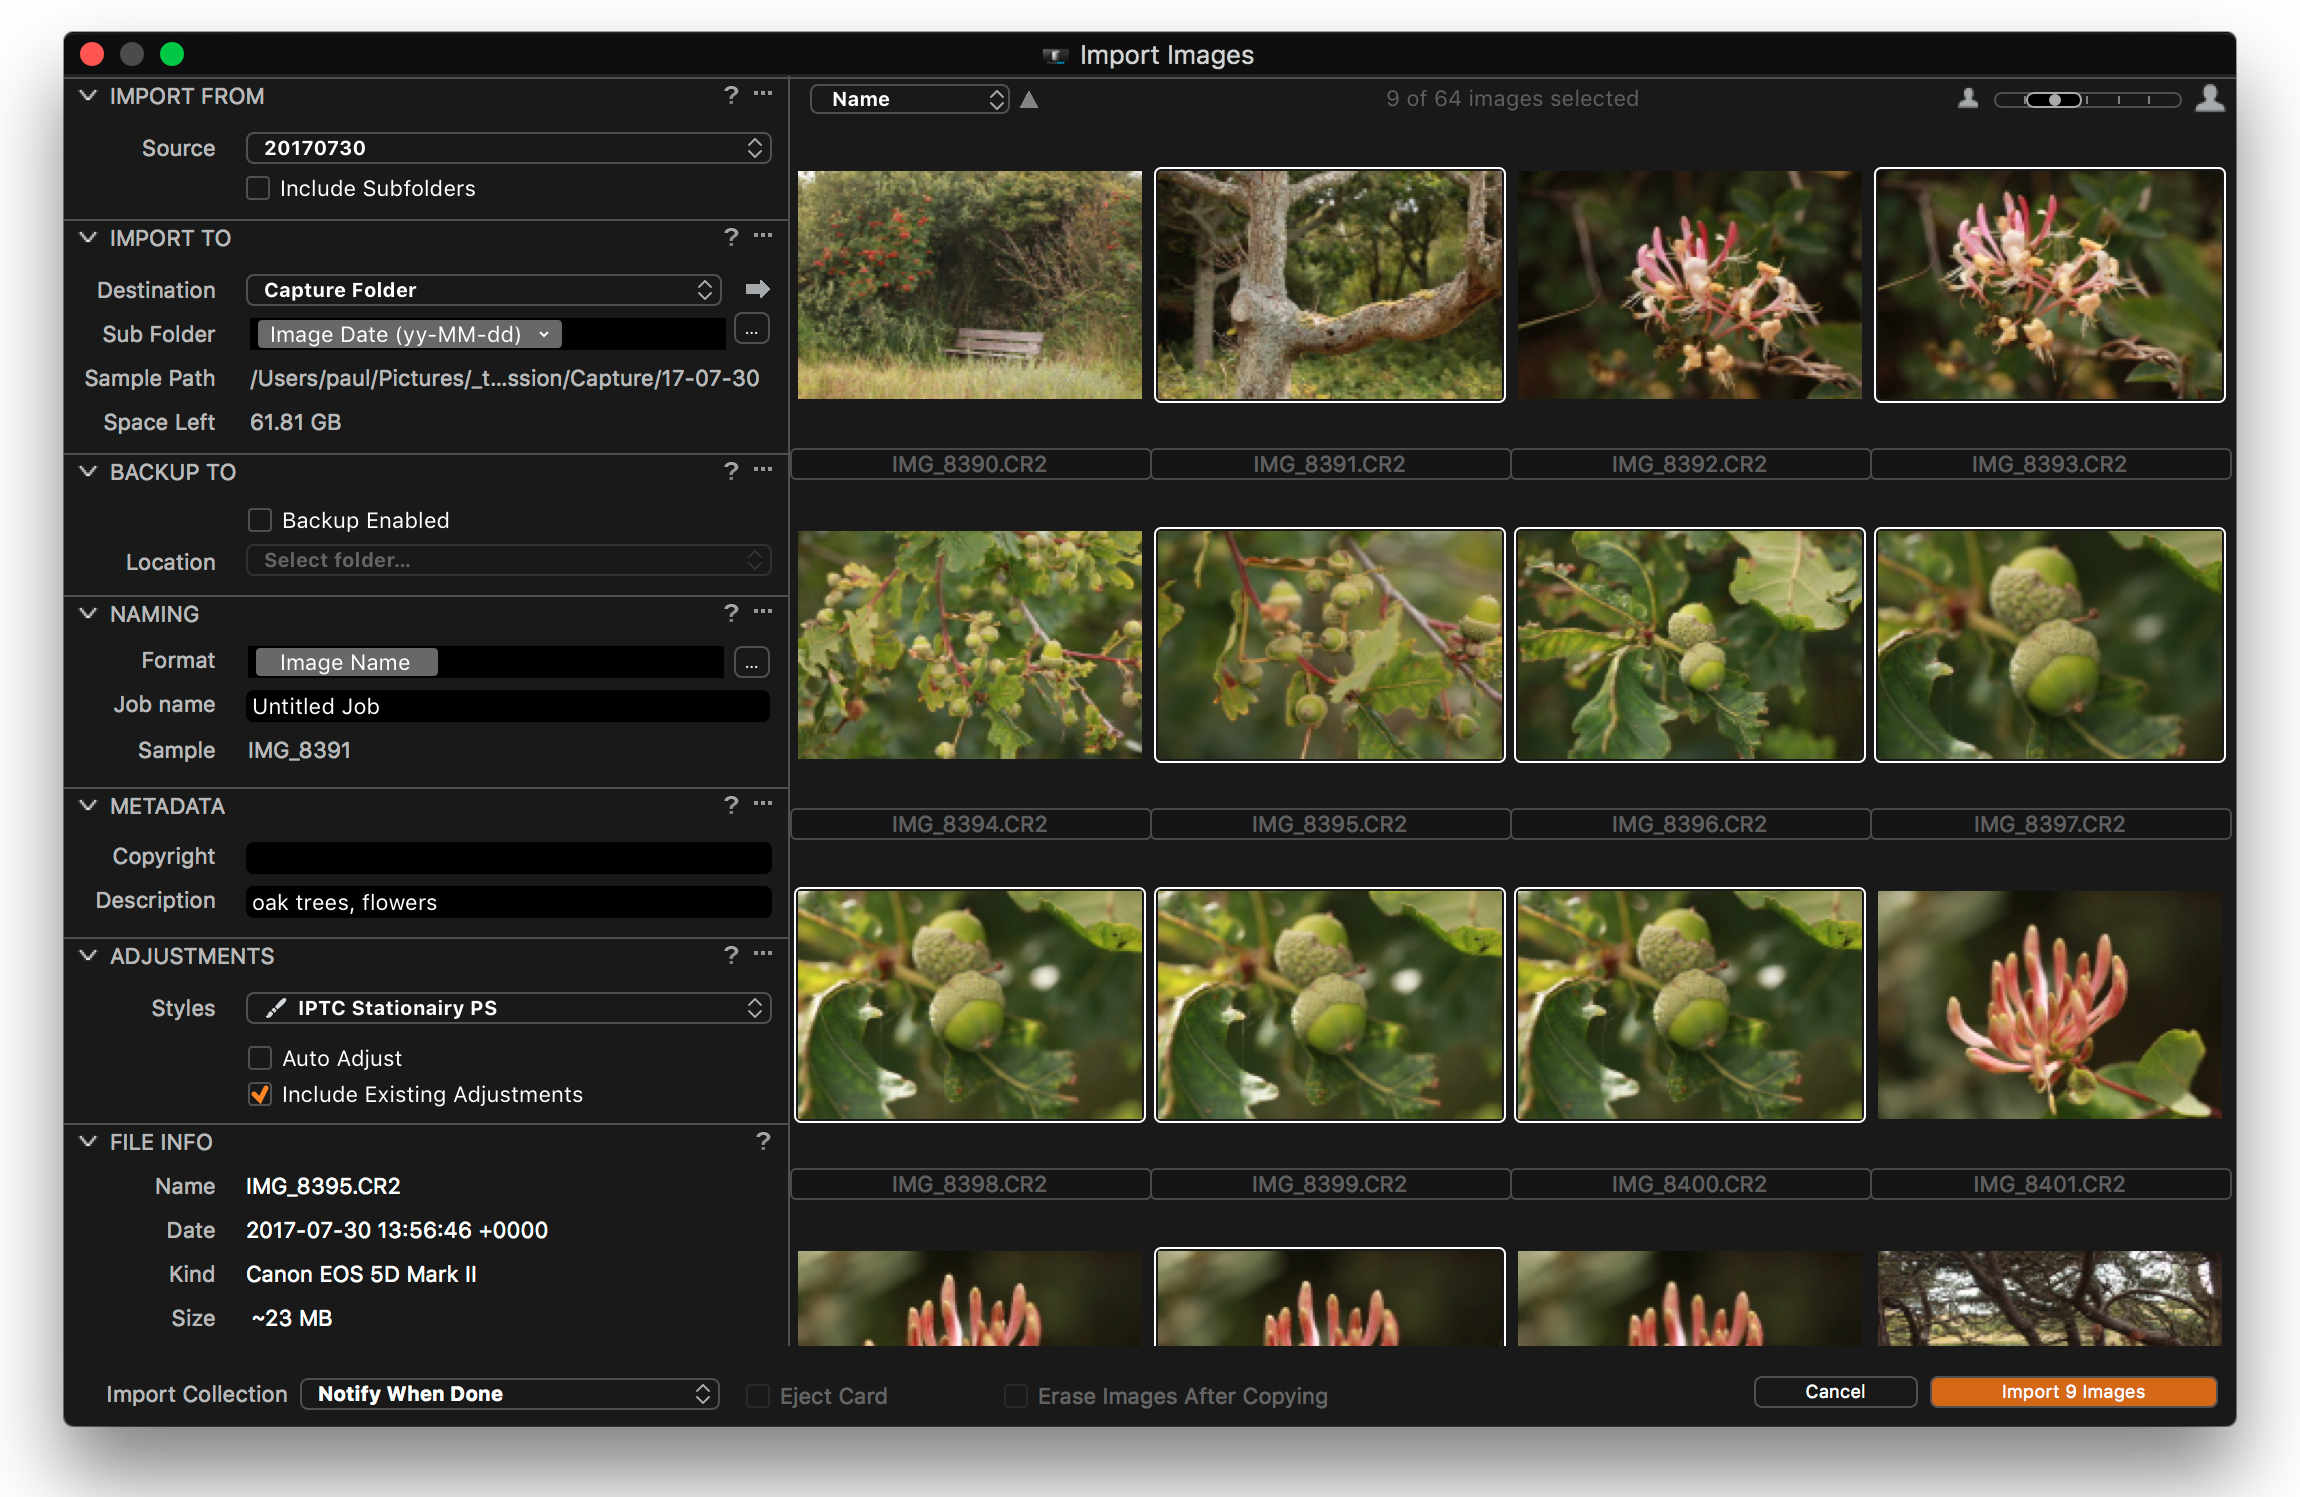 Importing Images Into Capture One • Image Alchemist